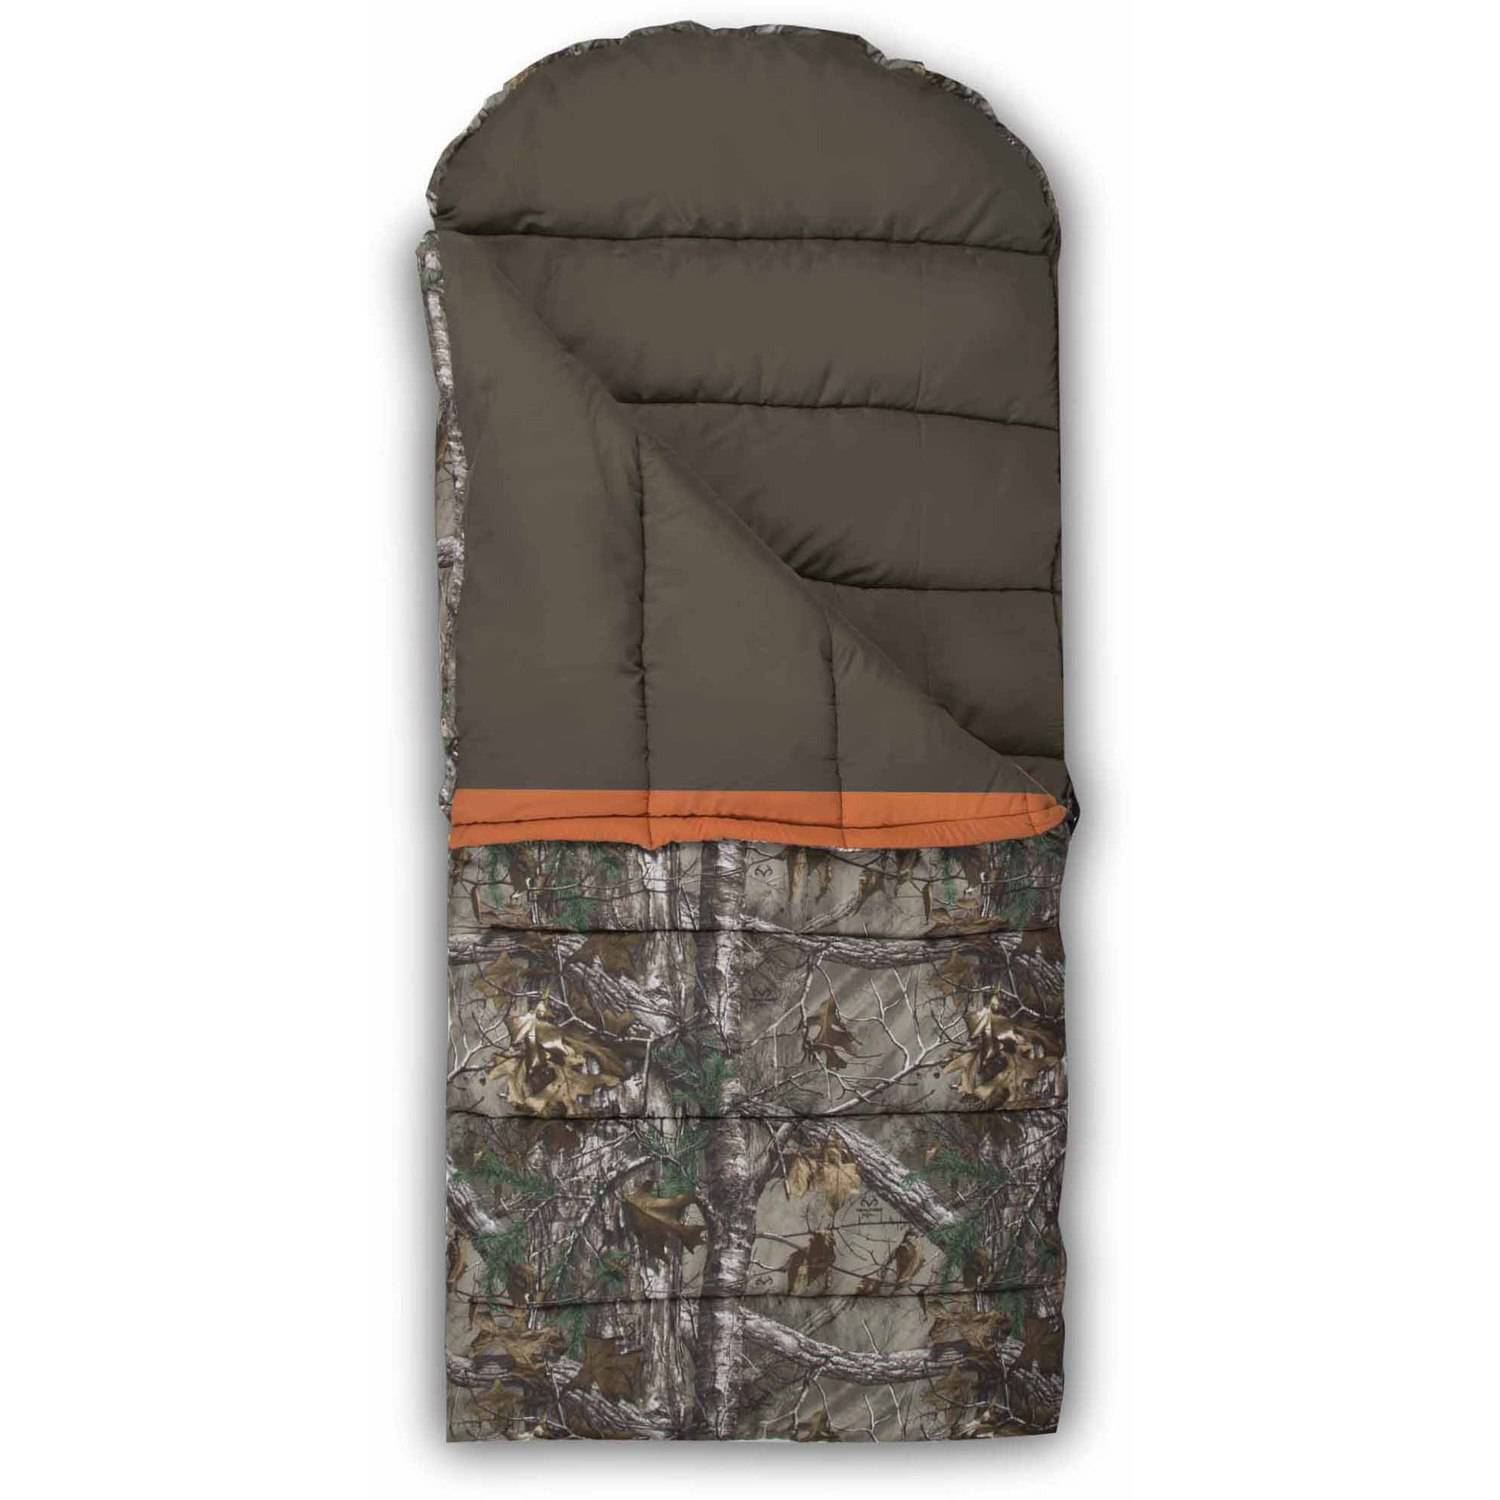 Exxel Outdoors Ranger Realtree Xtra 15-25 Degrees Sleeping Bag, Realtree Xtra by Master Sportsman